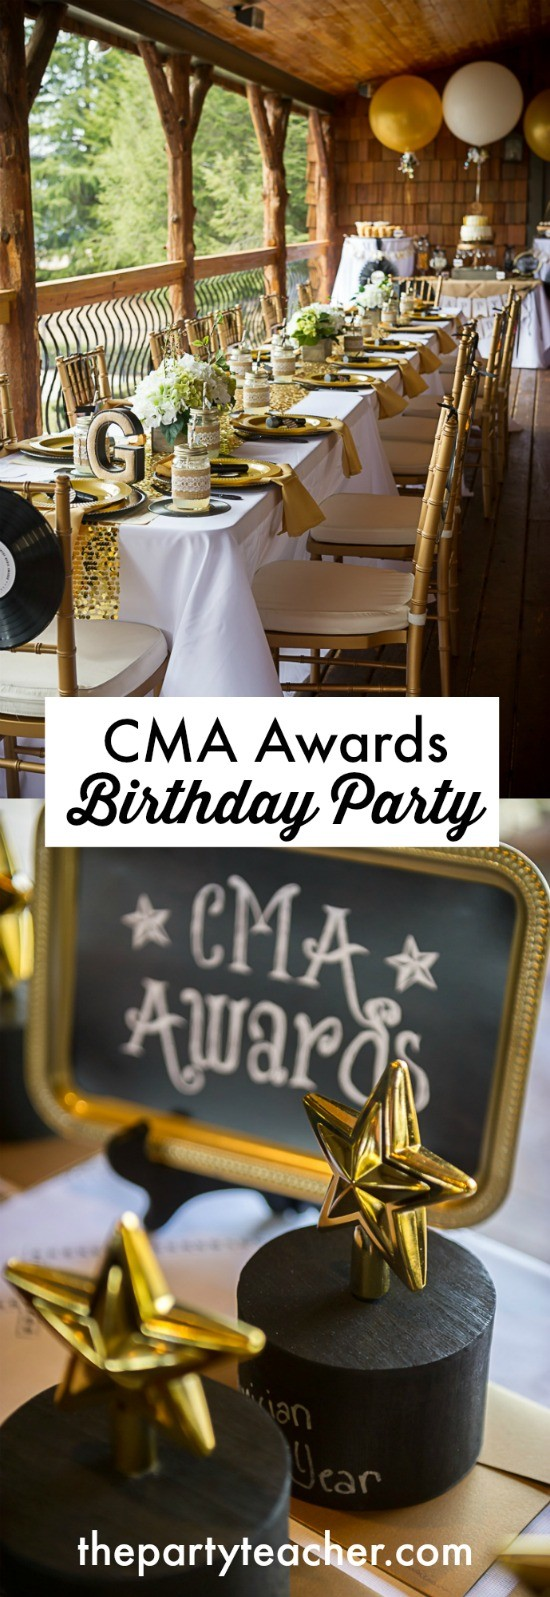 CMA Awards Birthday Party Ideas By The Teacher